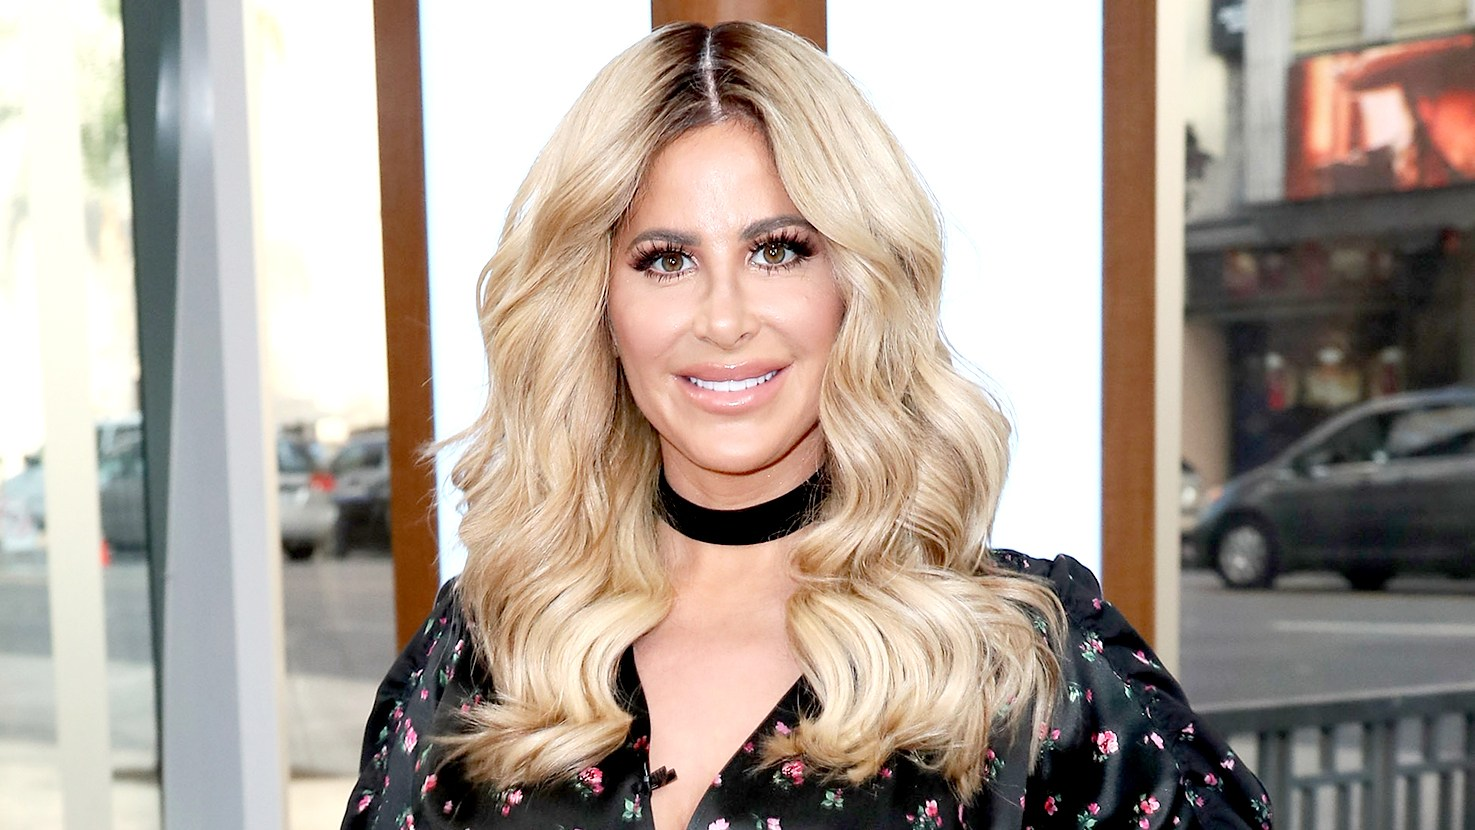 Kim Zolciak visits Hollywood Today Live at W Hollywood on October 13, 2016 in Hollywood, California.